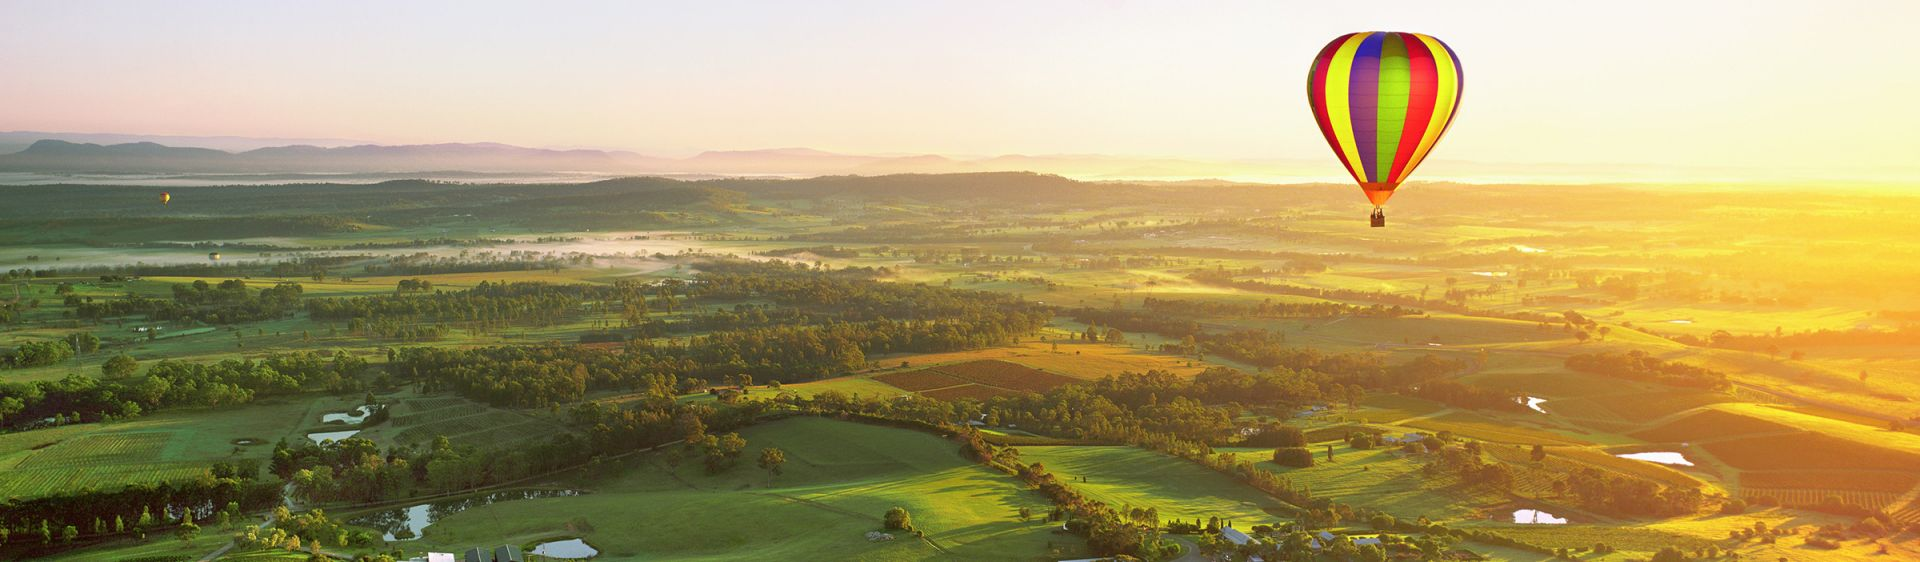 Hot air ballooning in the beautiful Hunter Valley region of NSW